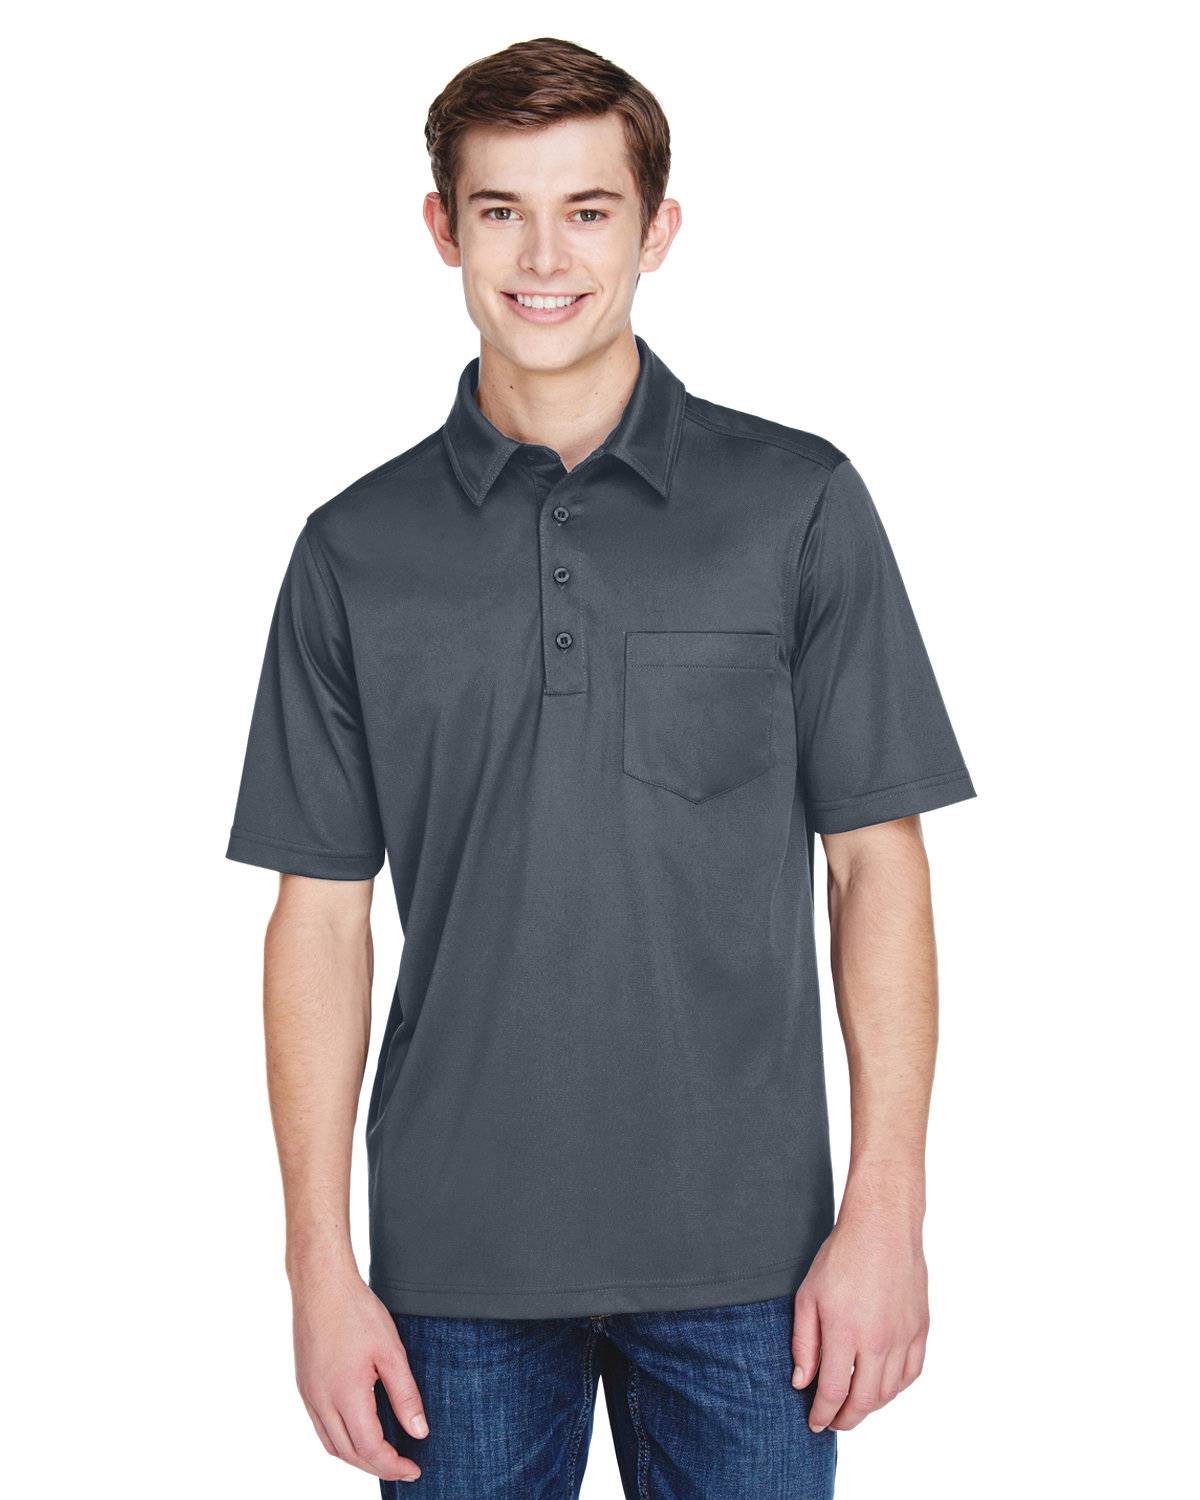 Extreme Men's Eperformance™ Shift SnagProtection Plus Polo CARBON